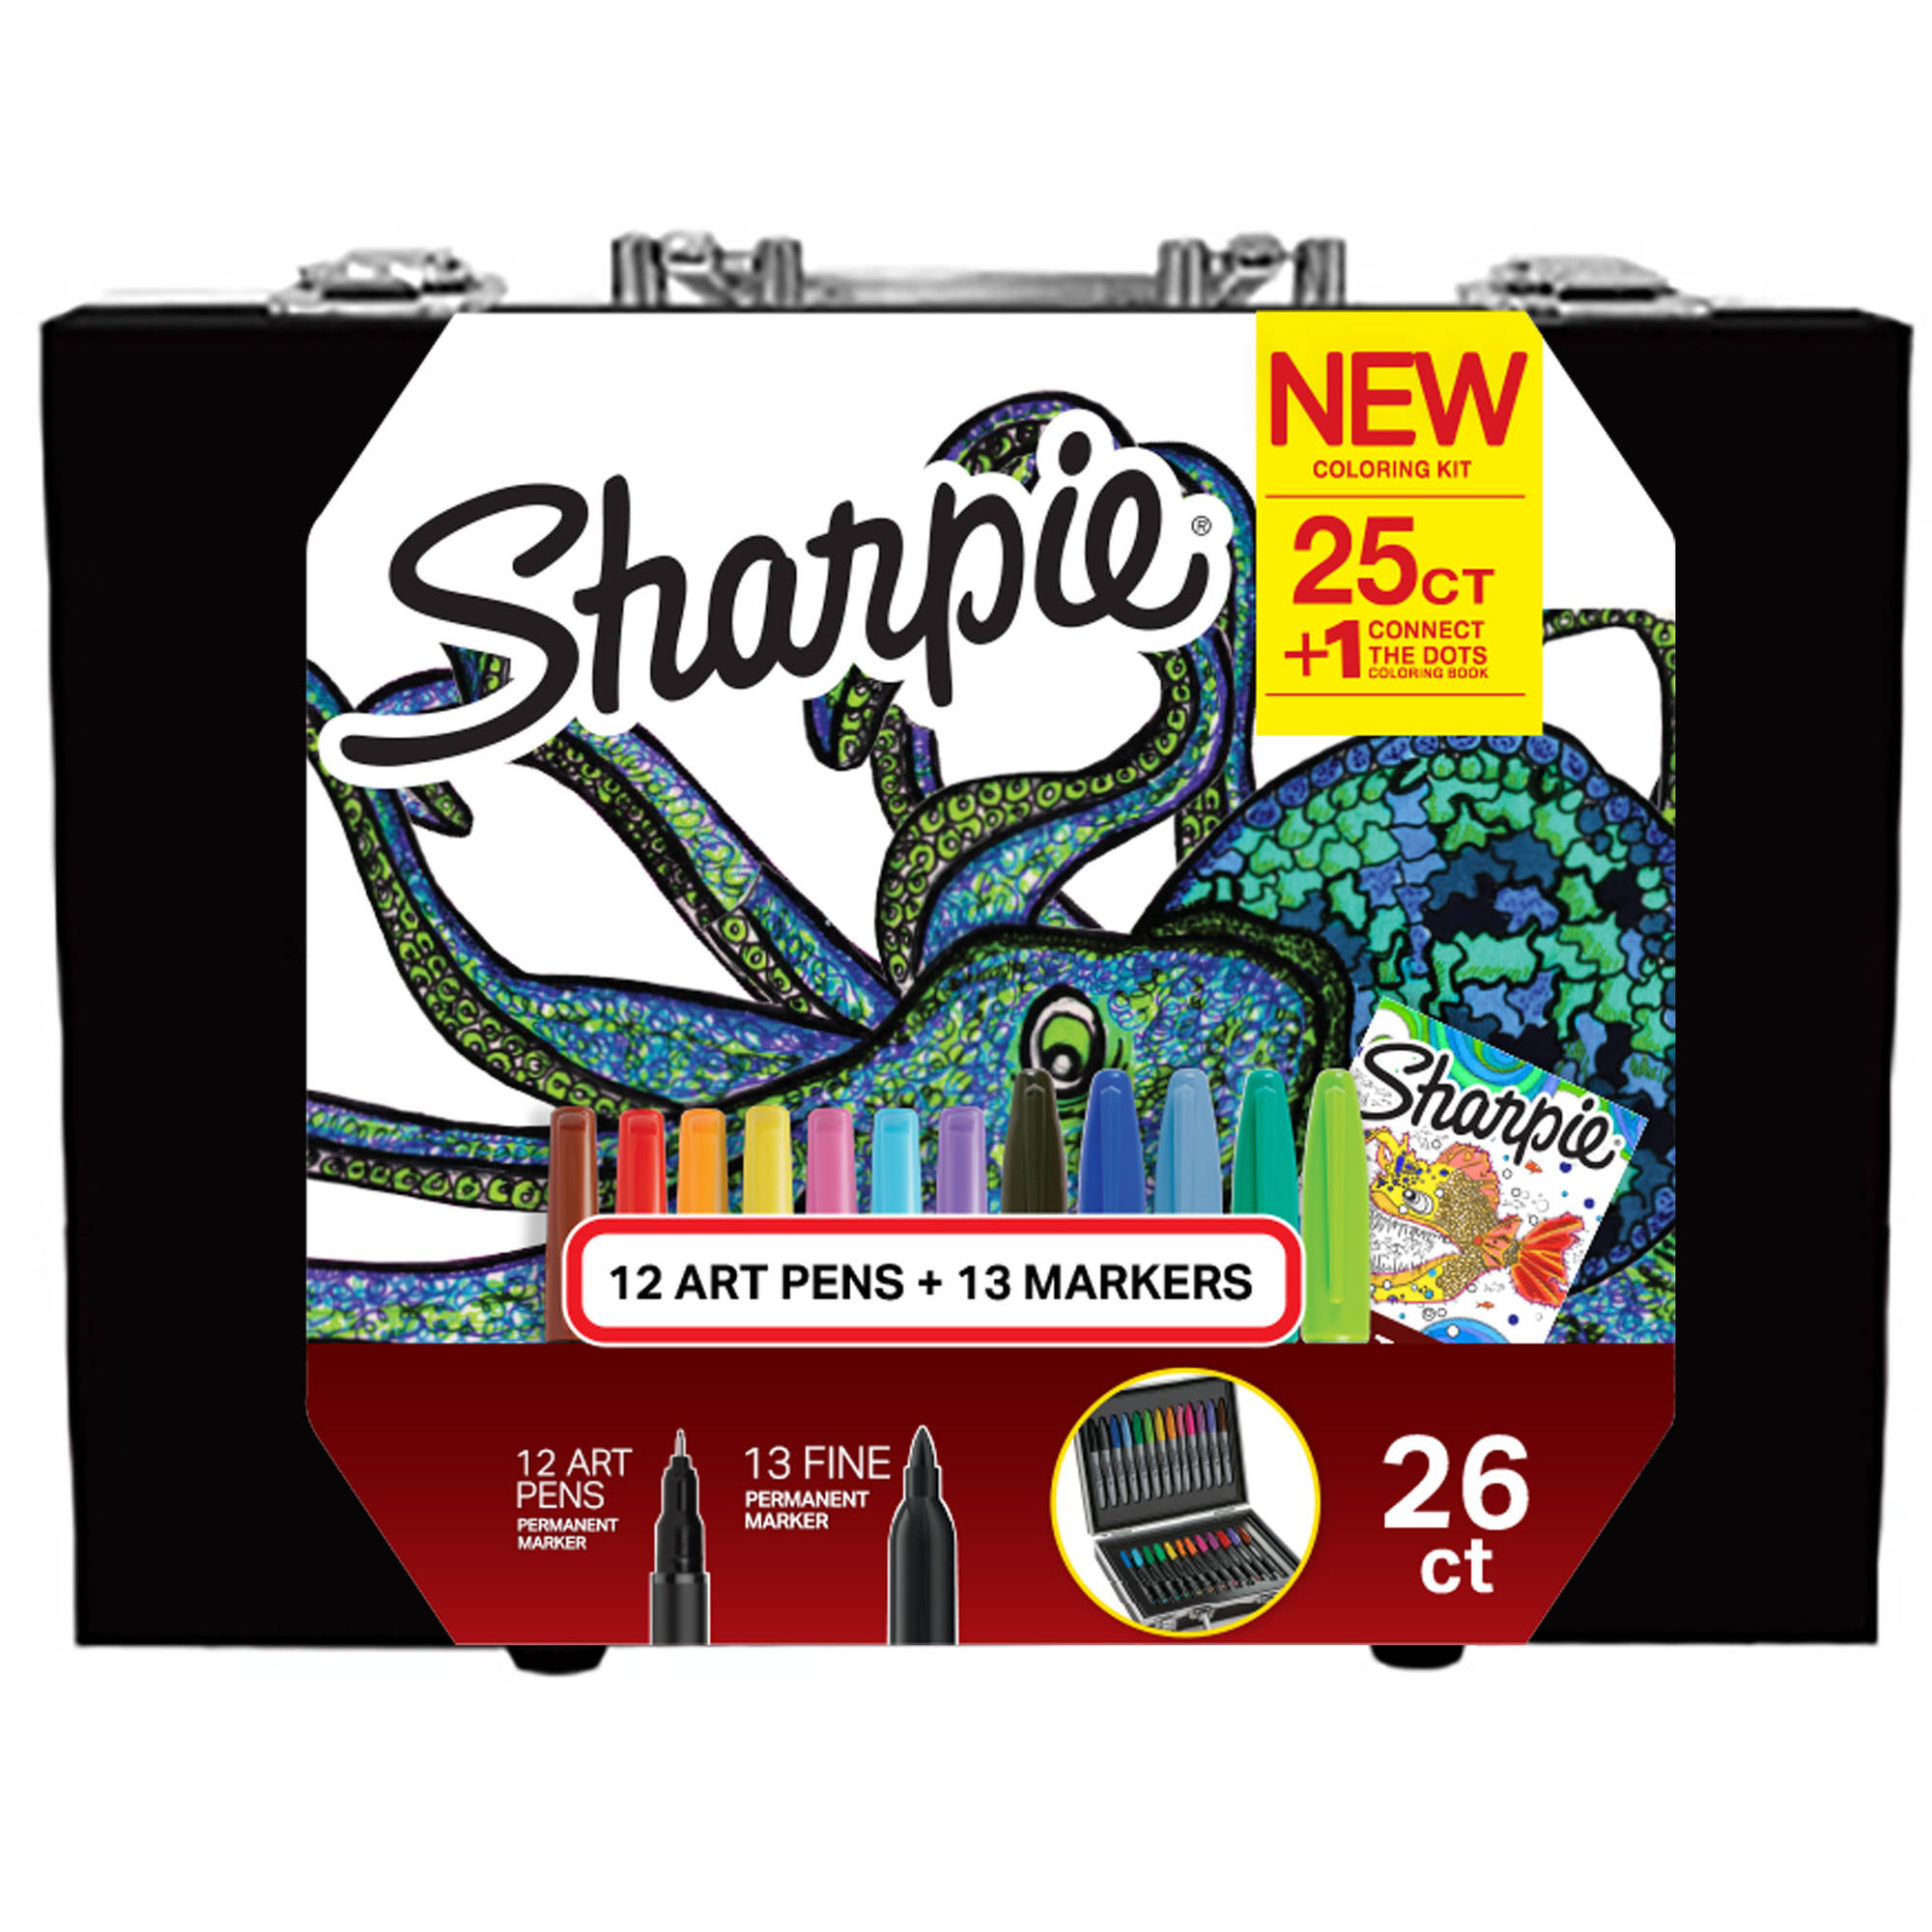 Sharpie Coloring Kit with Permanent Markers, Art Pens and Coloring Booklet, Hard Case, 26 Count